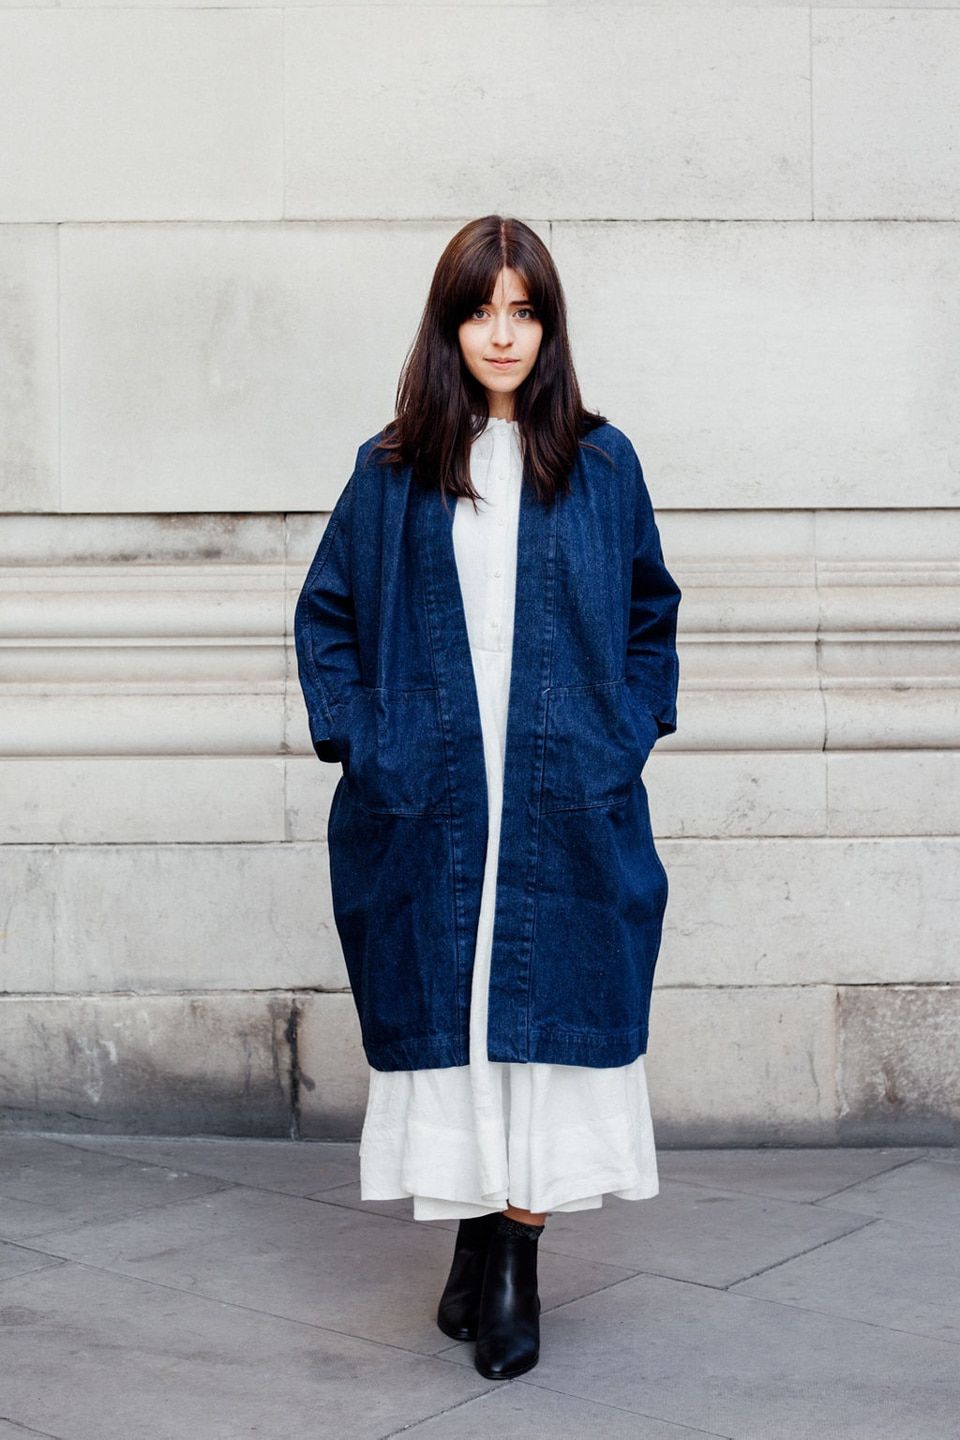 Besma wears white dress with longline denim jacket